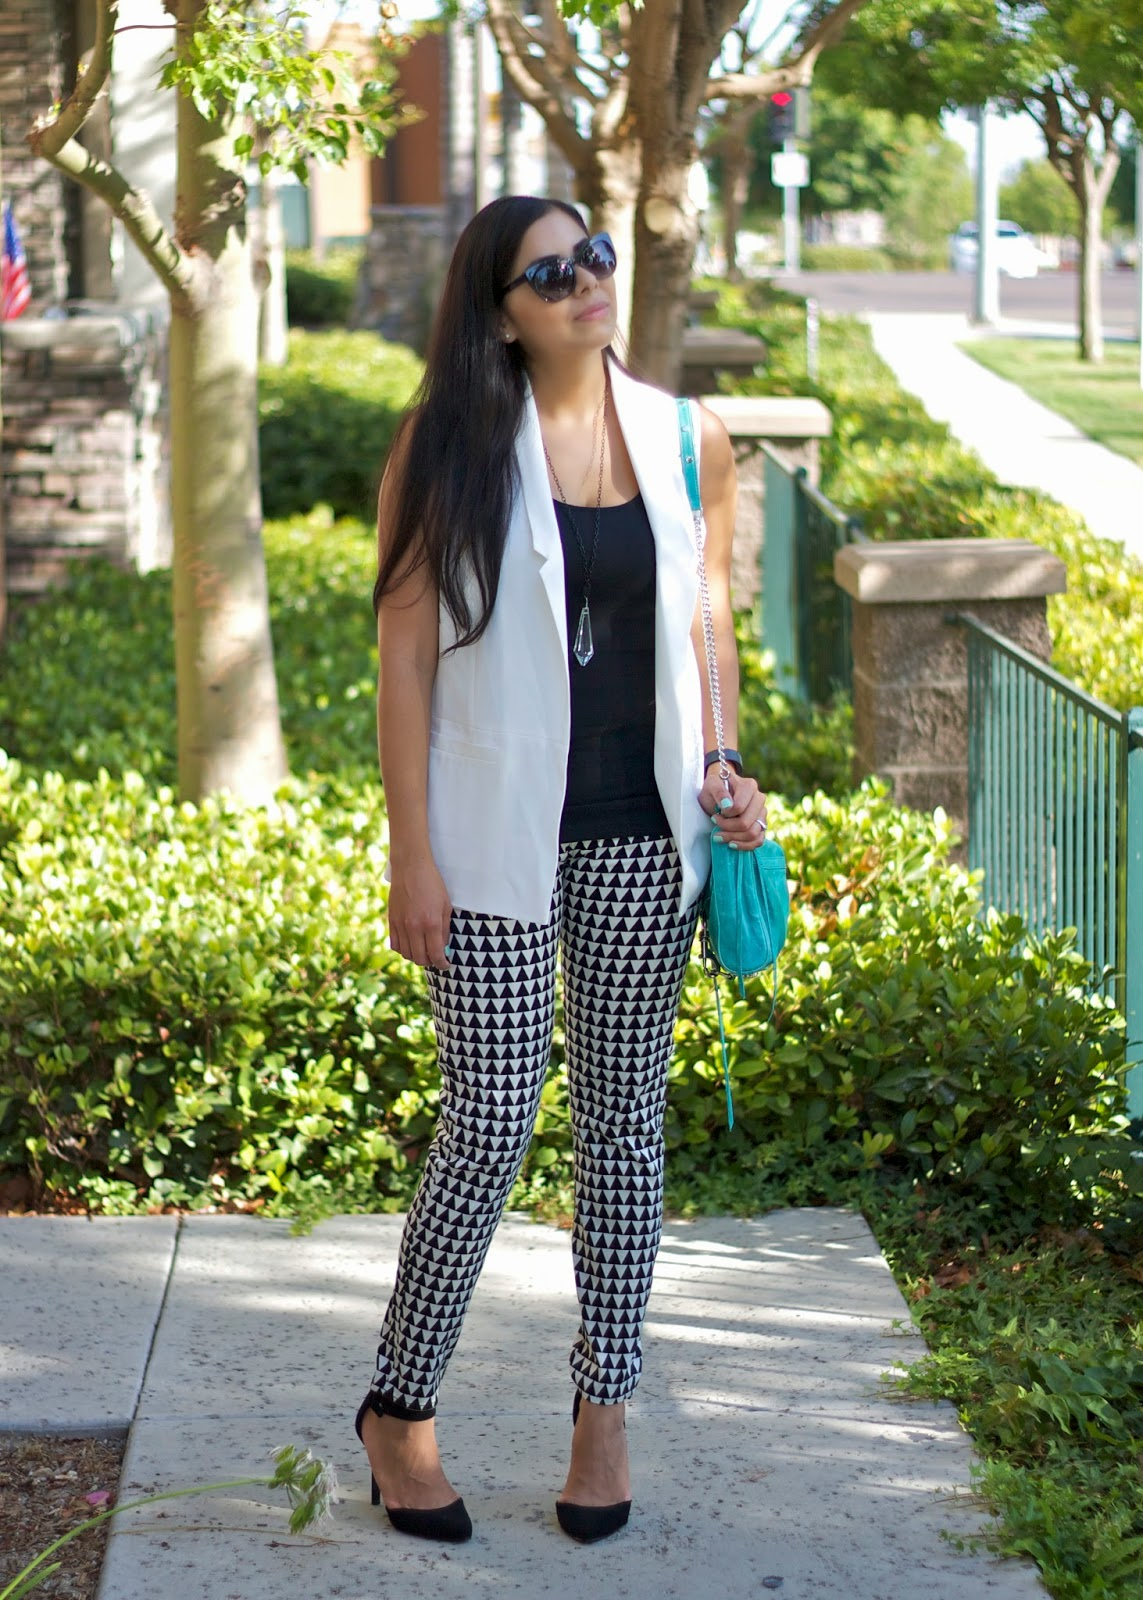 Black and white outfit for night out, black and white outfit for day out, geo print outfit